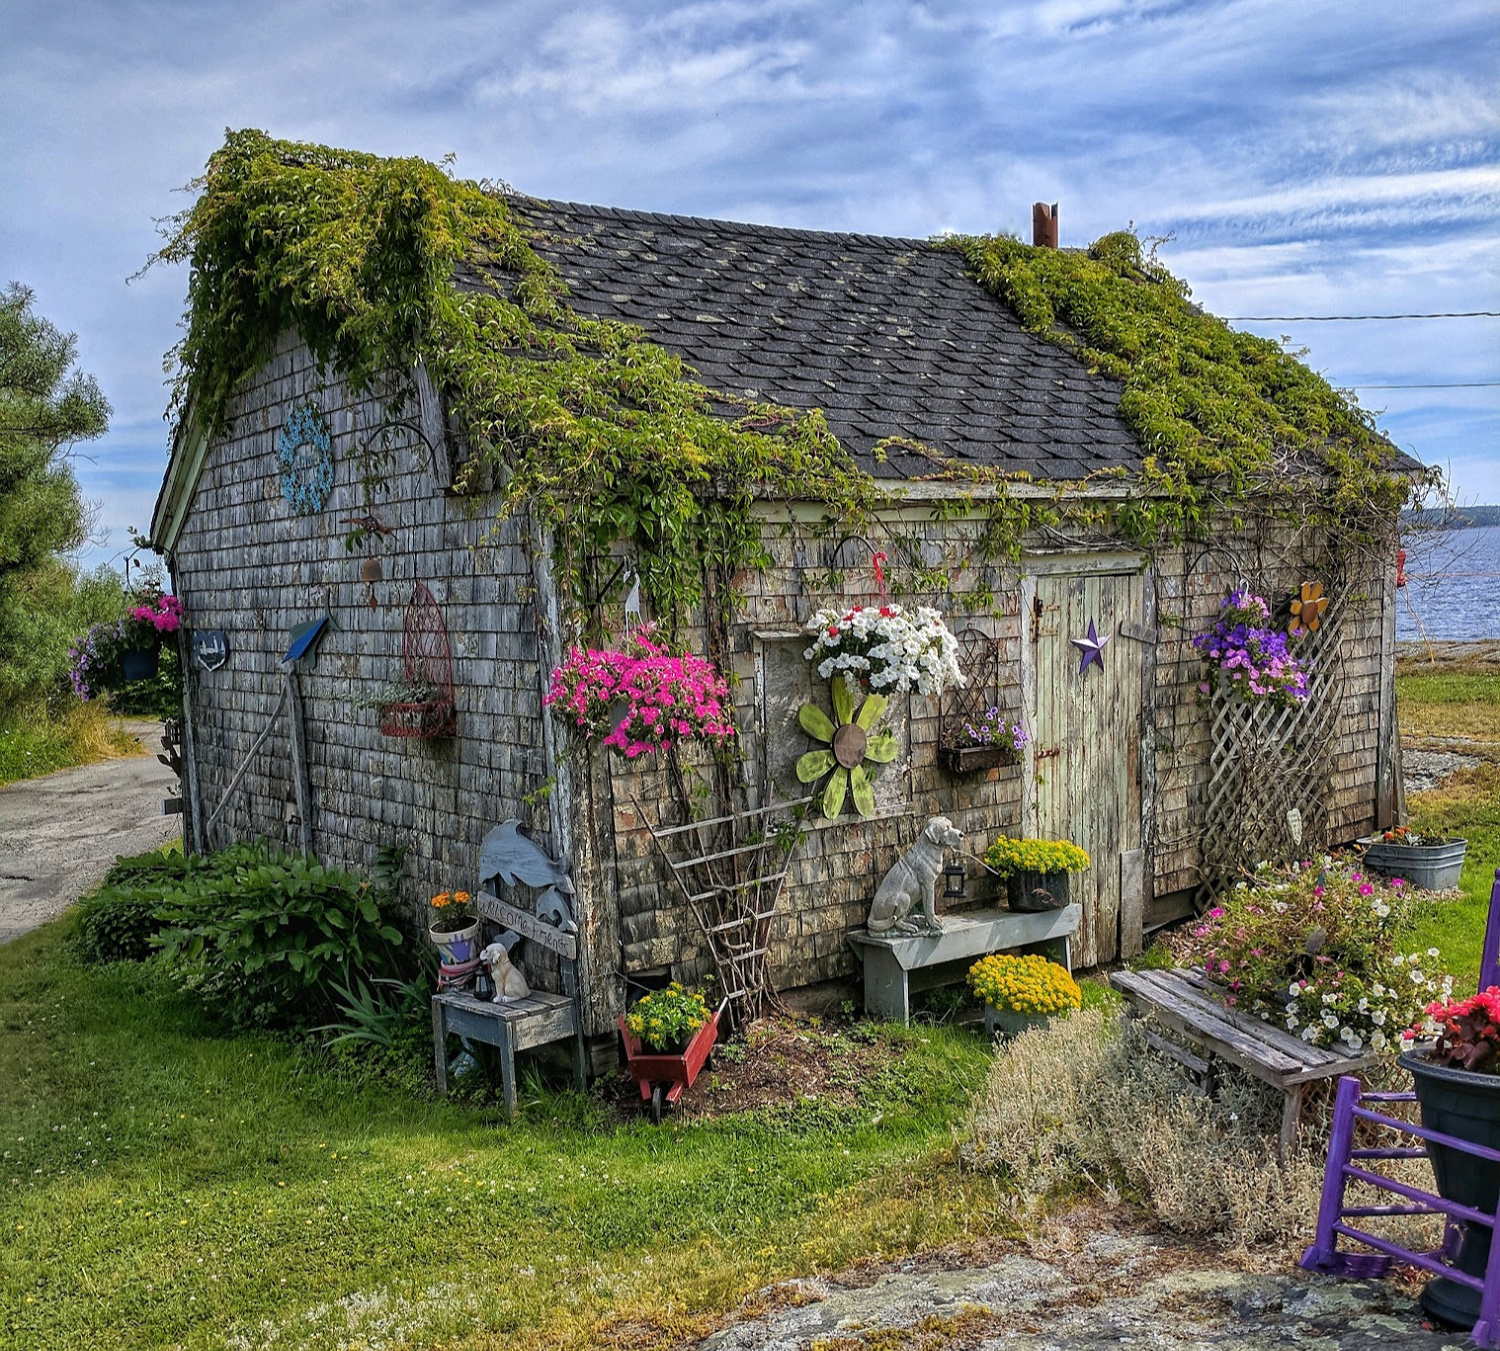 Old shack decorated with flowers in a fishing village in Nova Scotia.